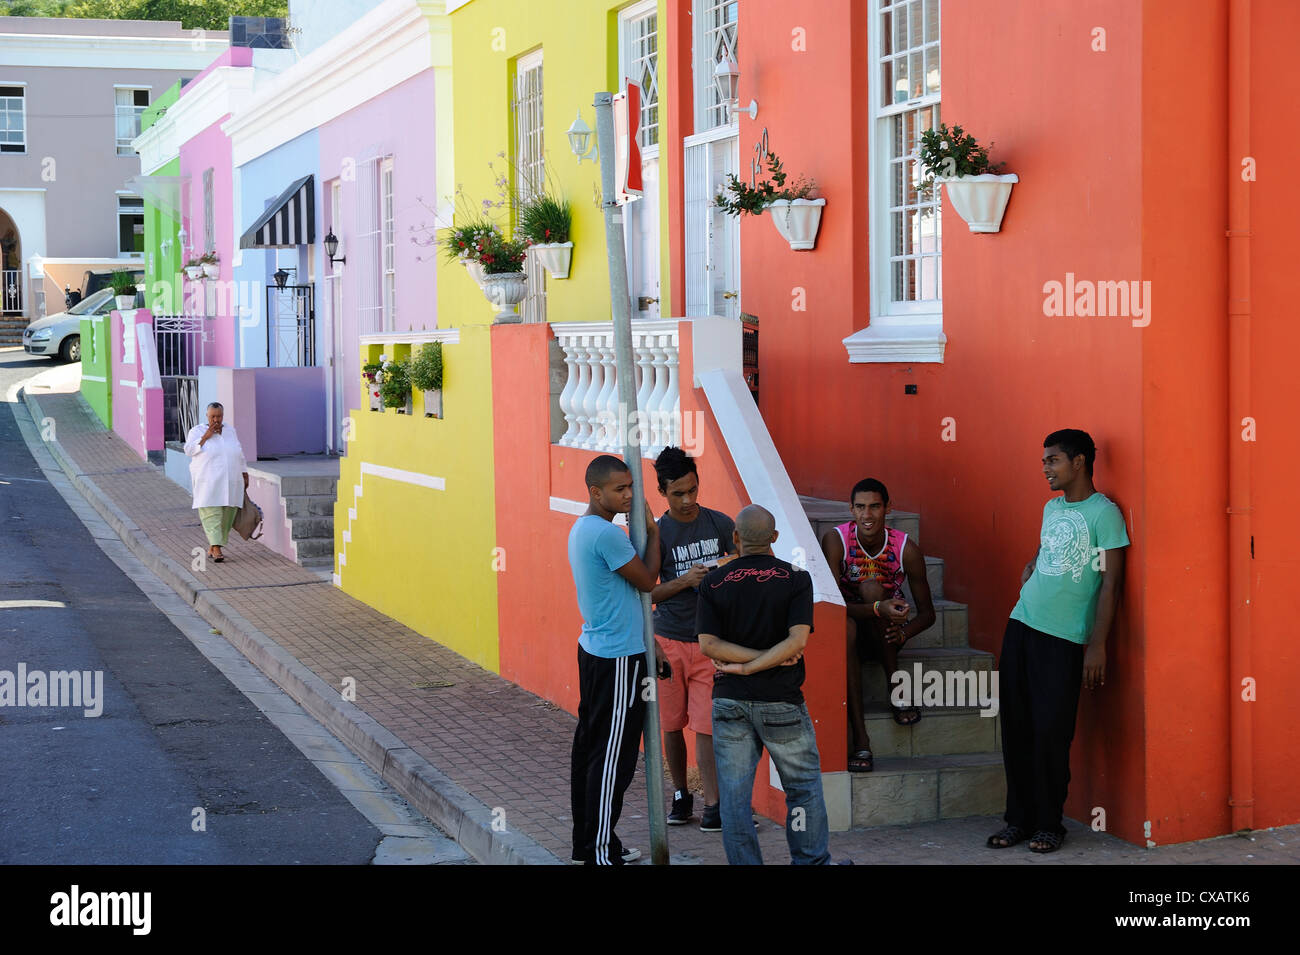 Colourful houses, Bo-Cape area, Malay inhabitants, Cape Town, South Africa, Africa - Stock Image